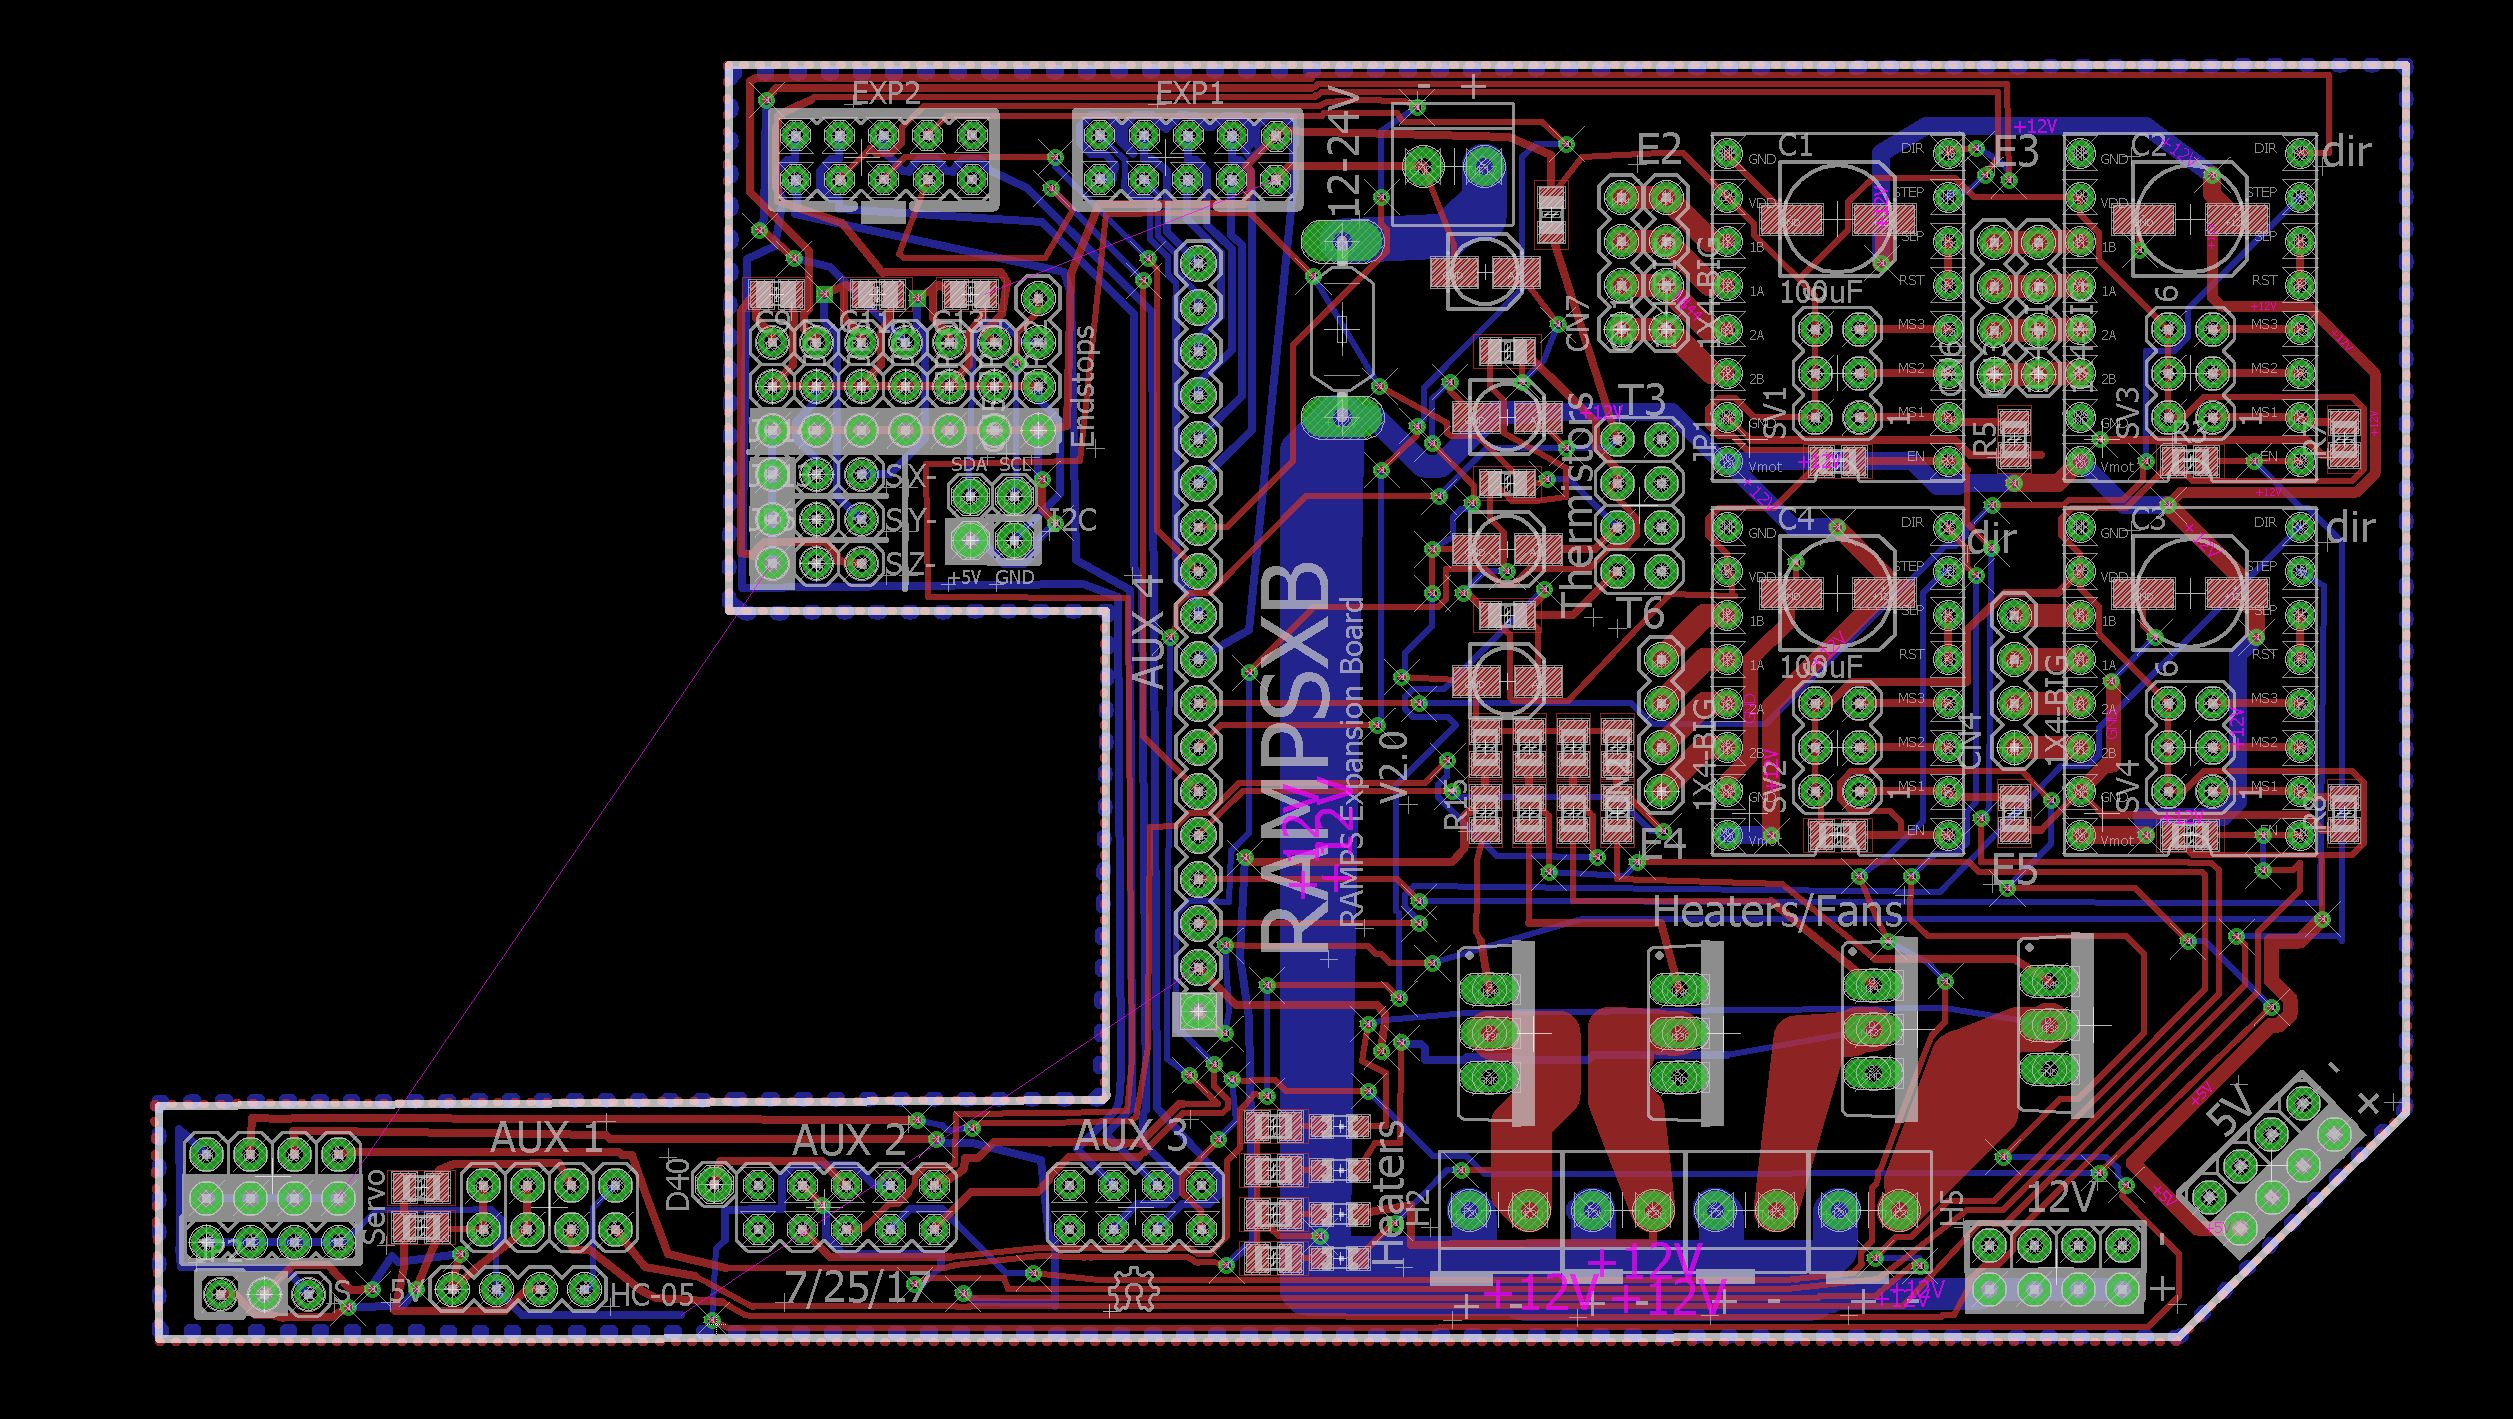 Rampsxb Dream The Impossible Ramps 14 Board It Took Me A While To Get All Wires Together But In End I Put V2 Pictures Section Above